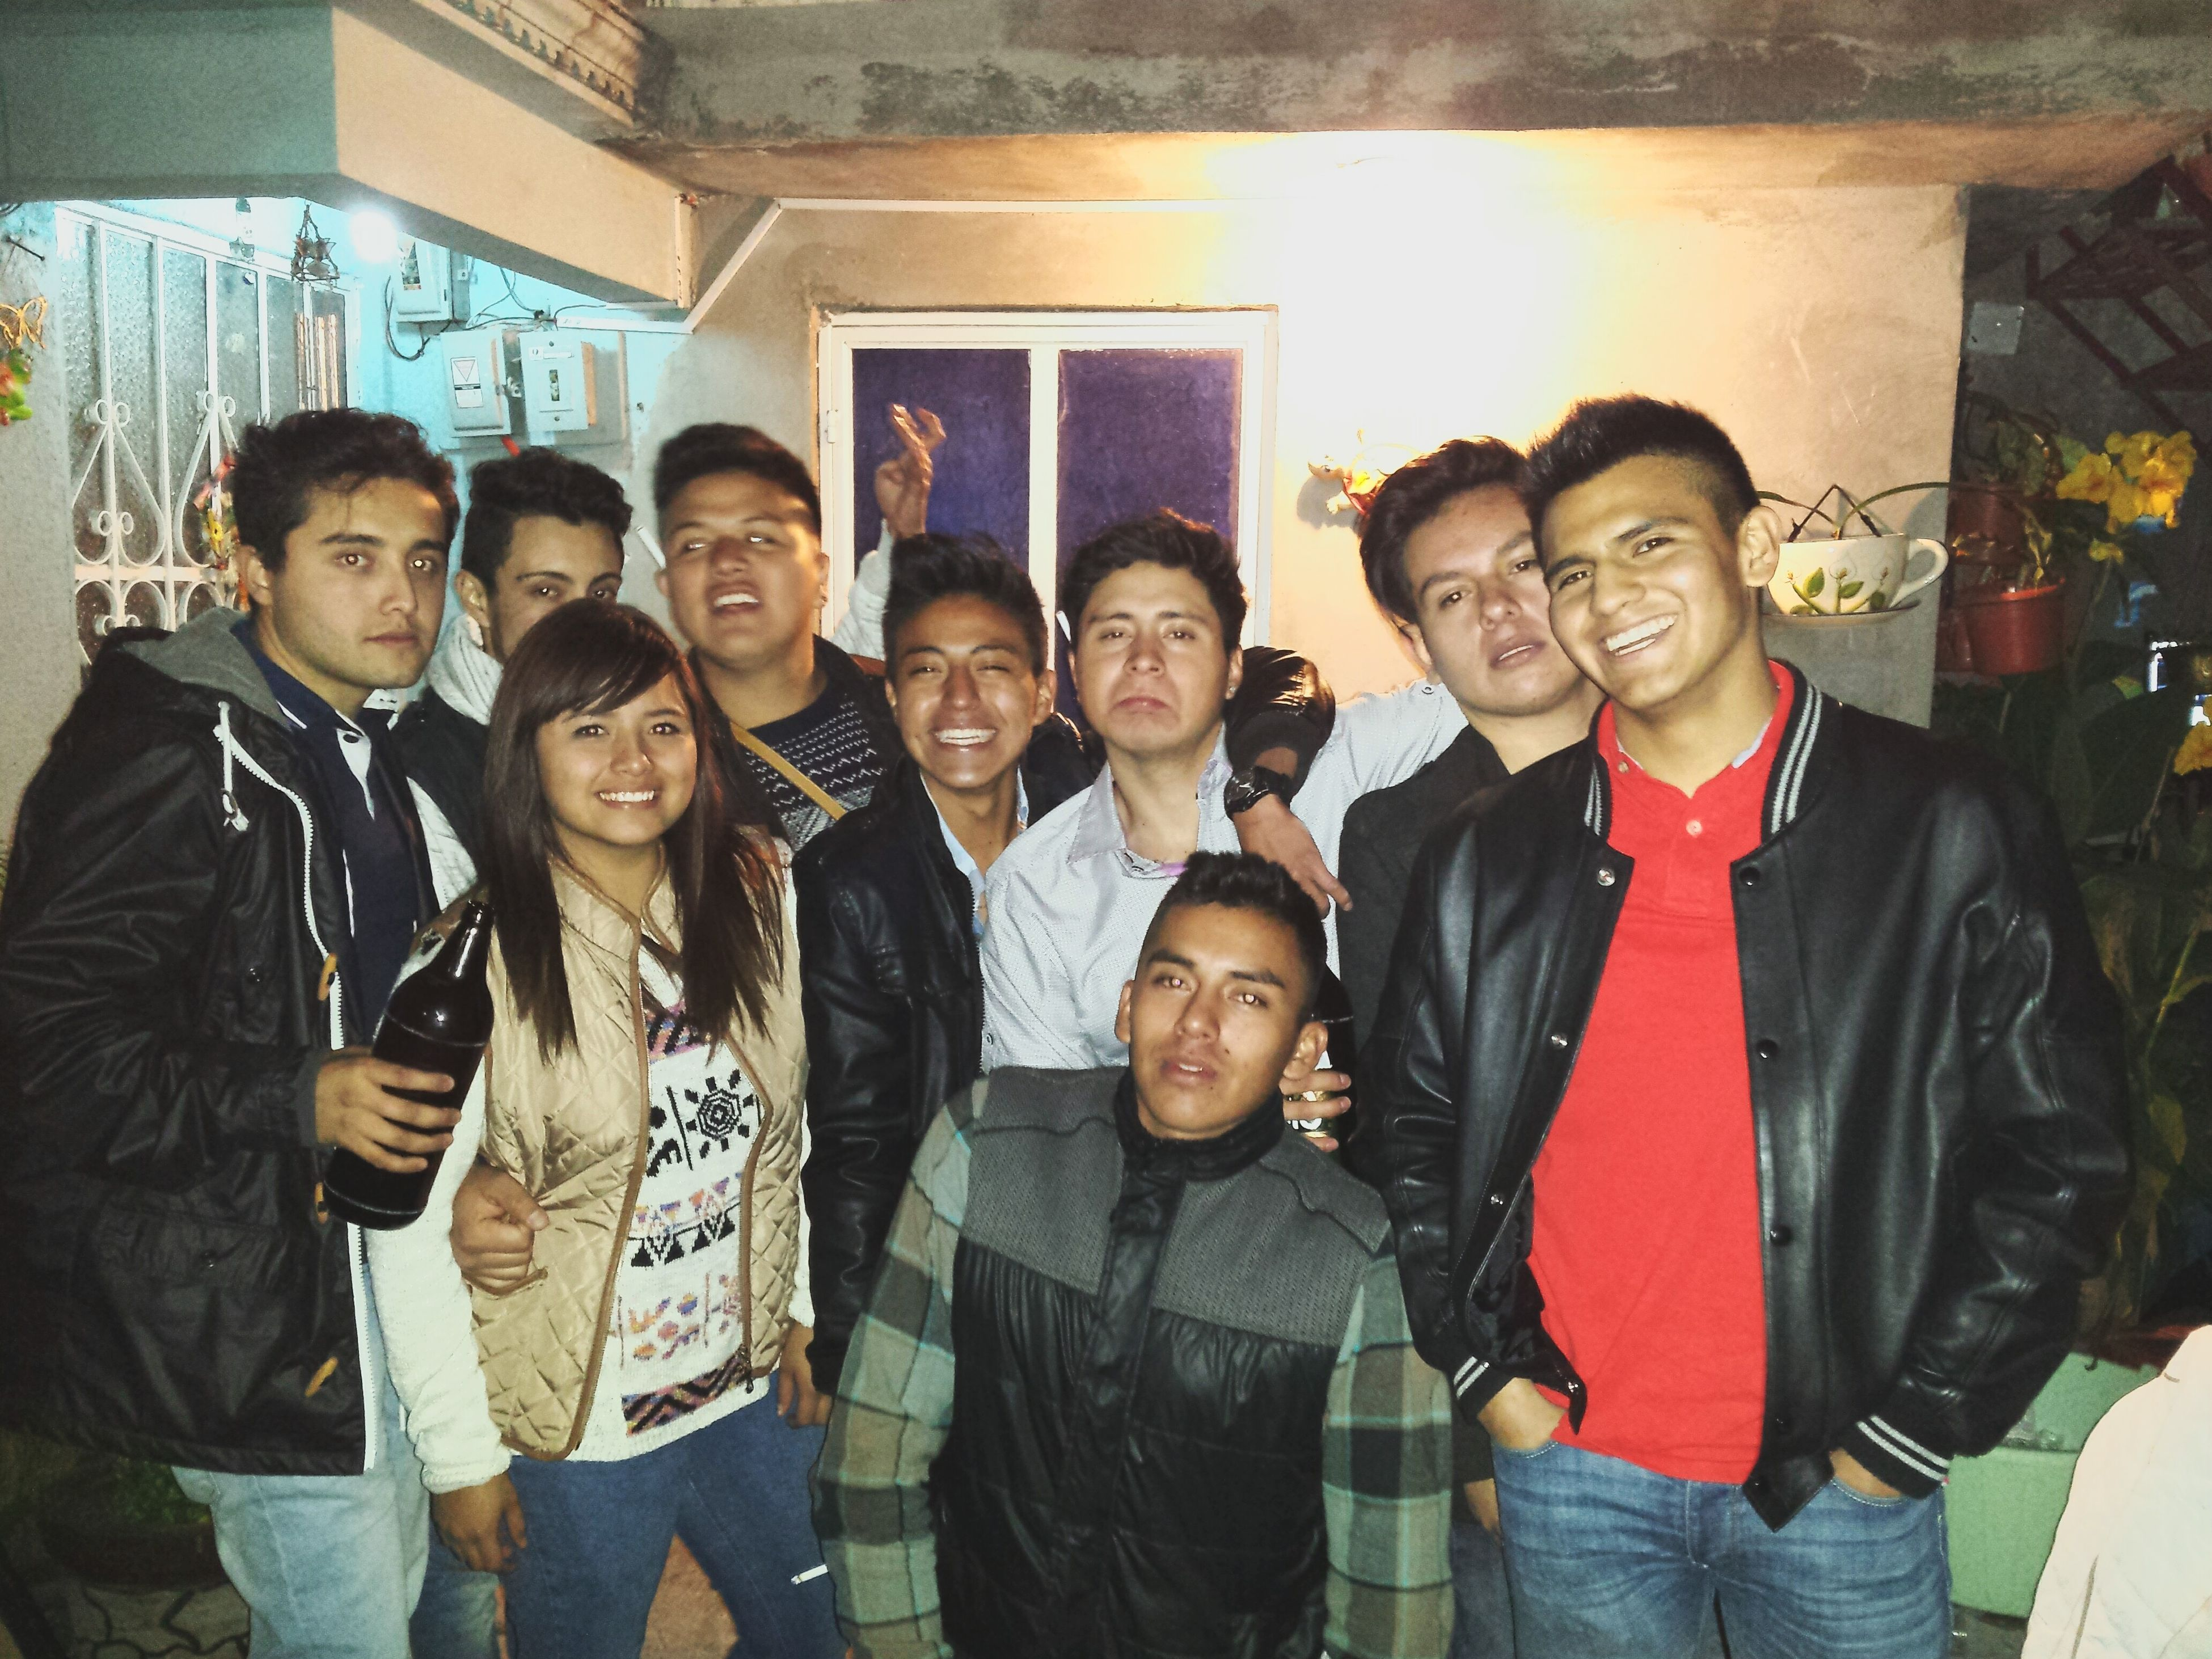 togetherness, lifestyles, casual clothing, bonding, love, leisure activity, friendship, standing, front view, person, portrait, indoors, happiness, men, smiling, three quarter length, looking at camera, young men